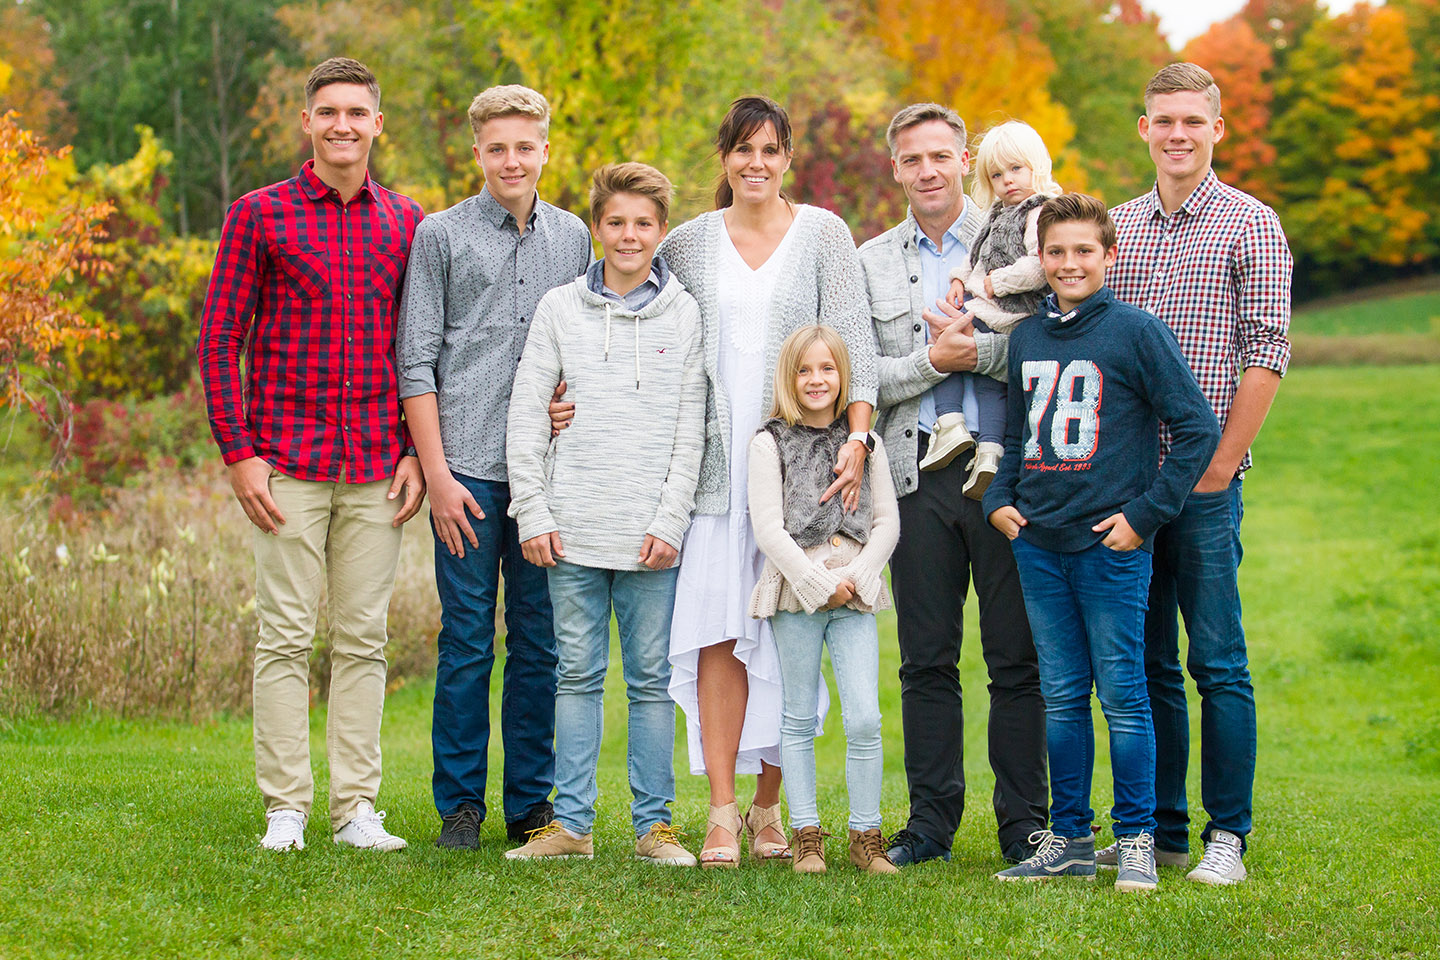 Family portraits taken during autumn in Orangeville by Frank Myrland Photography